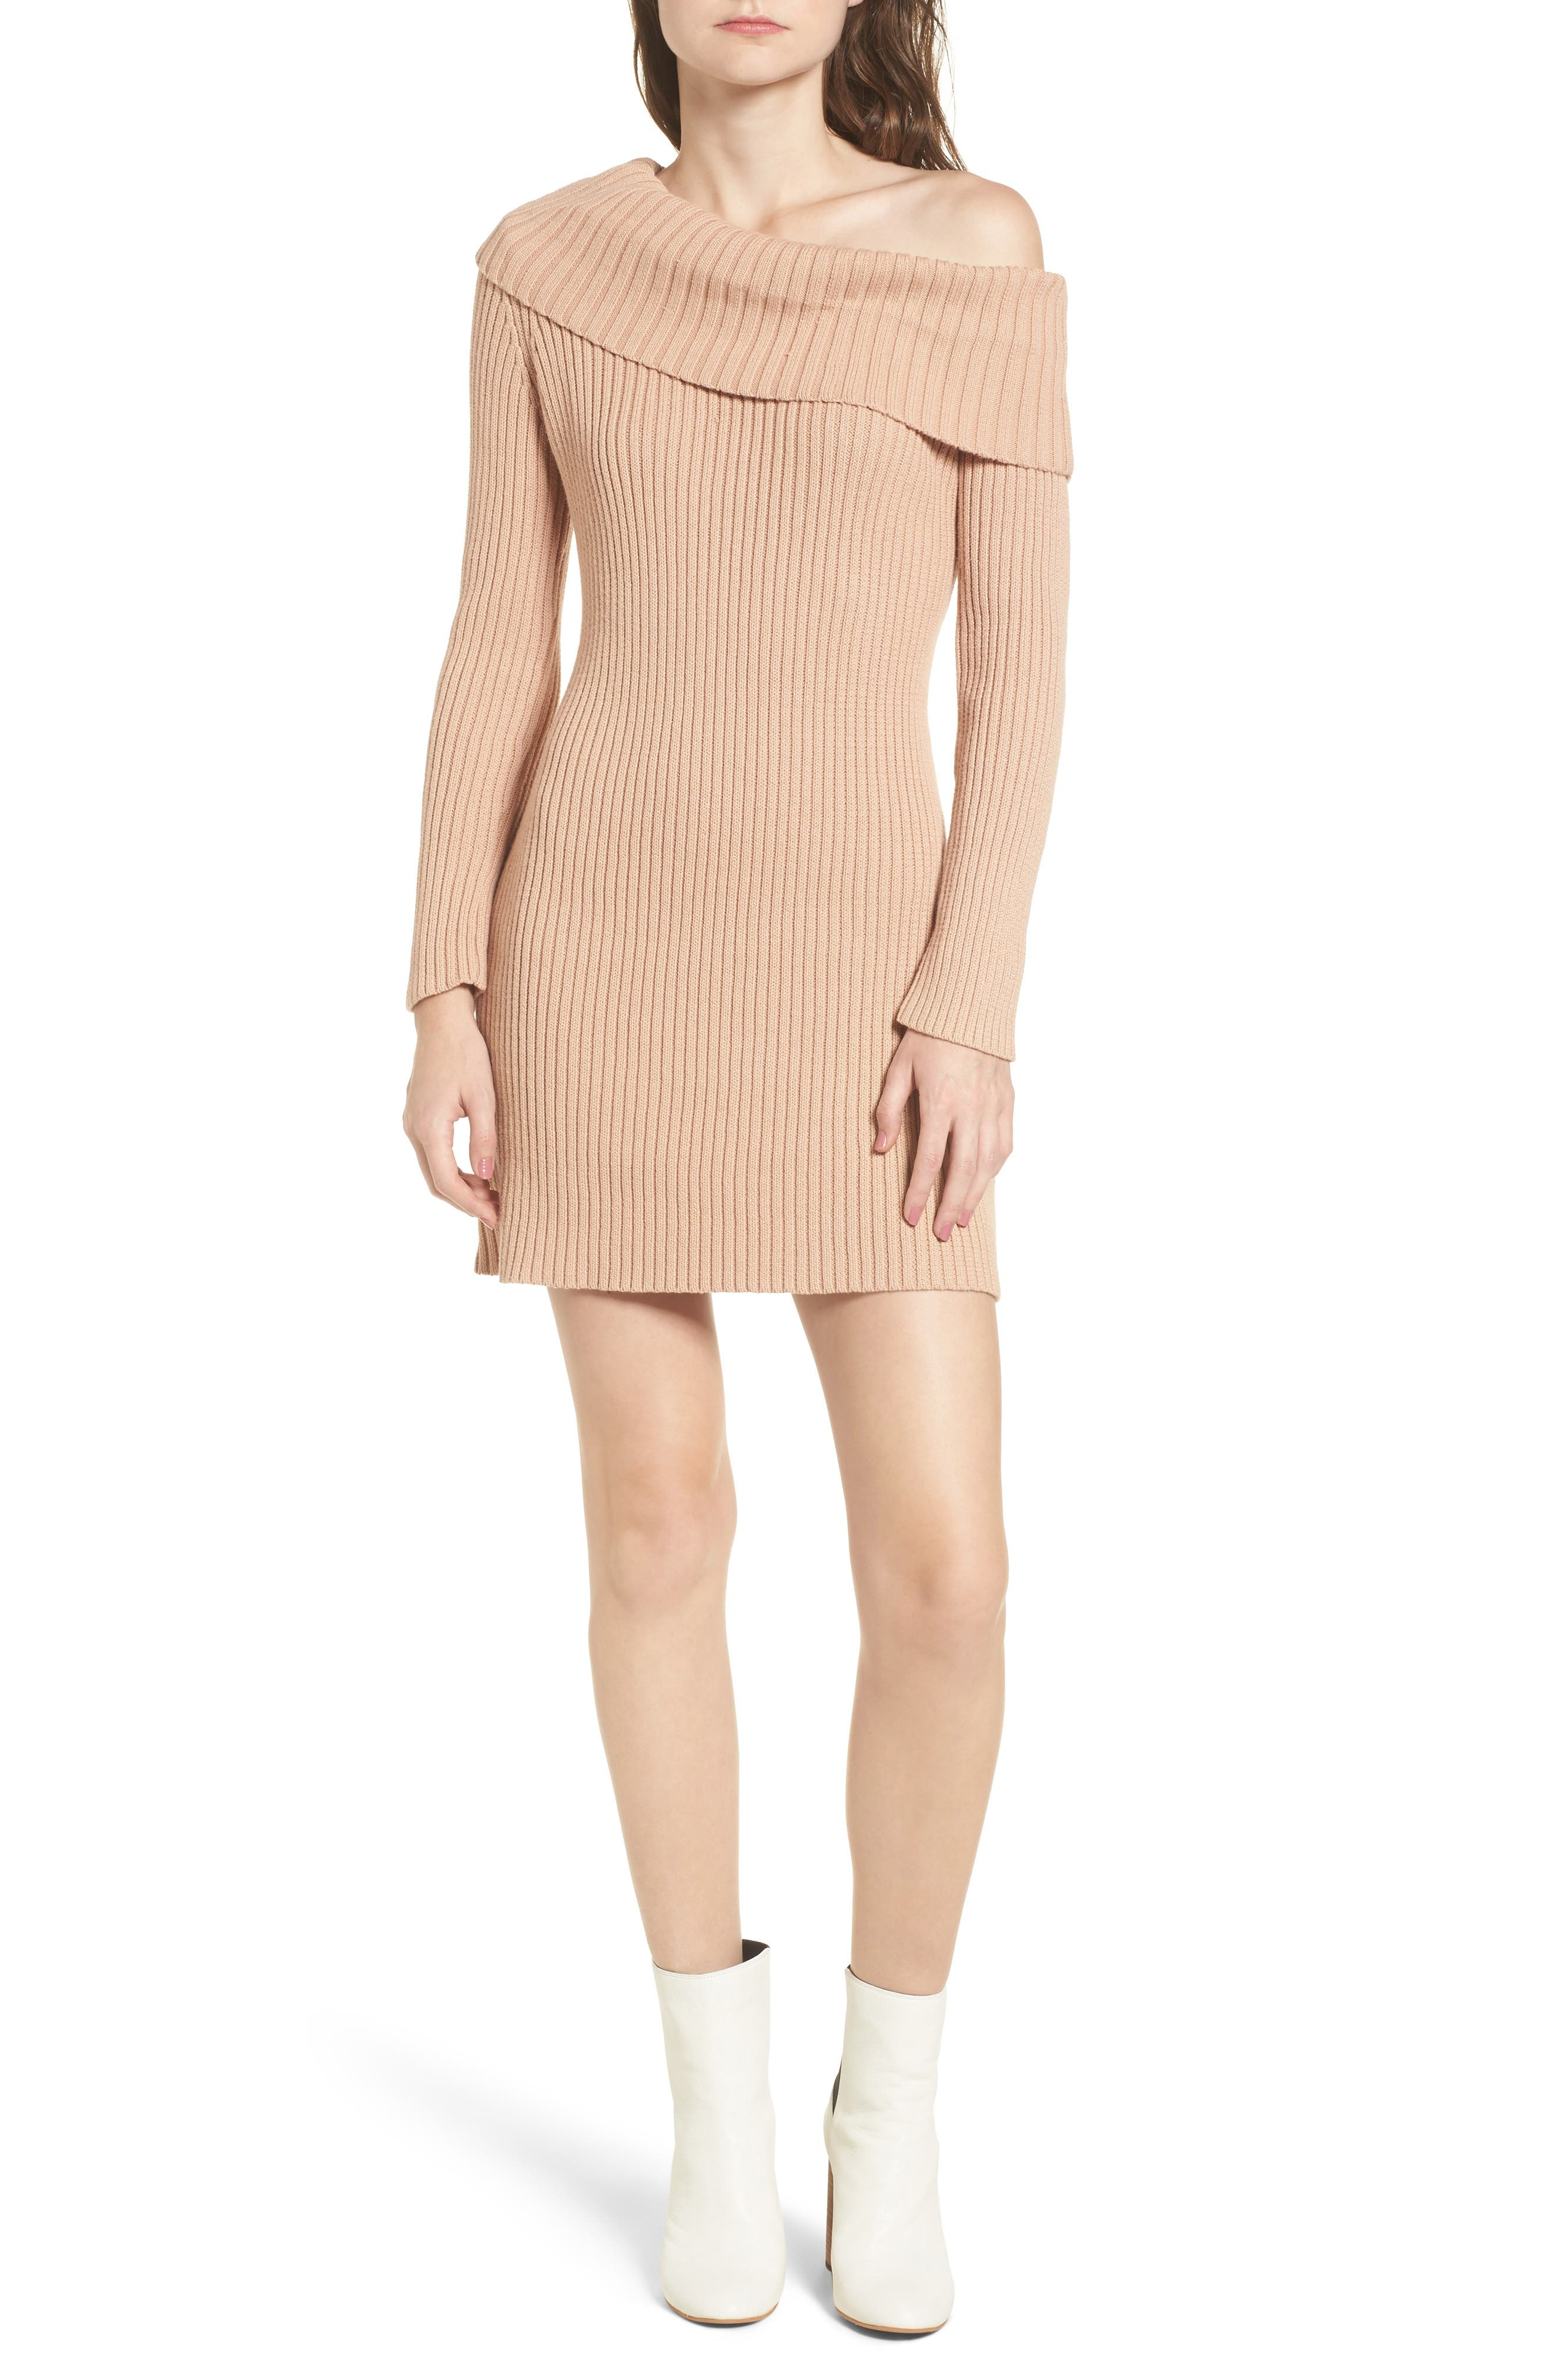 Like a Melody Off the Shoulder Dress,                             Main thumbnail 1, color,                             660